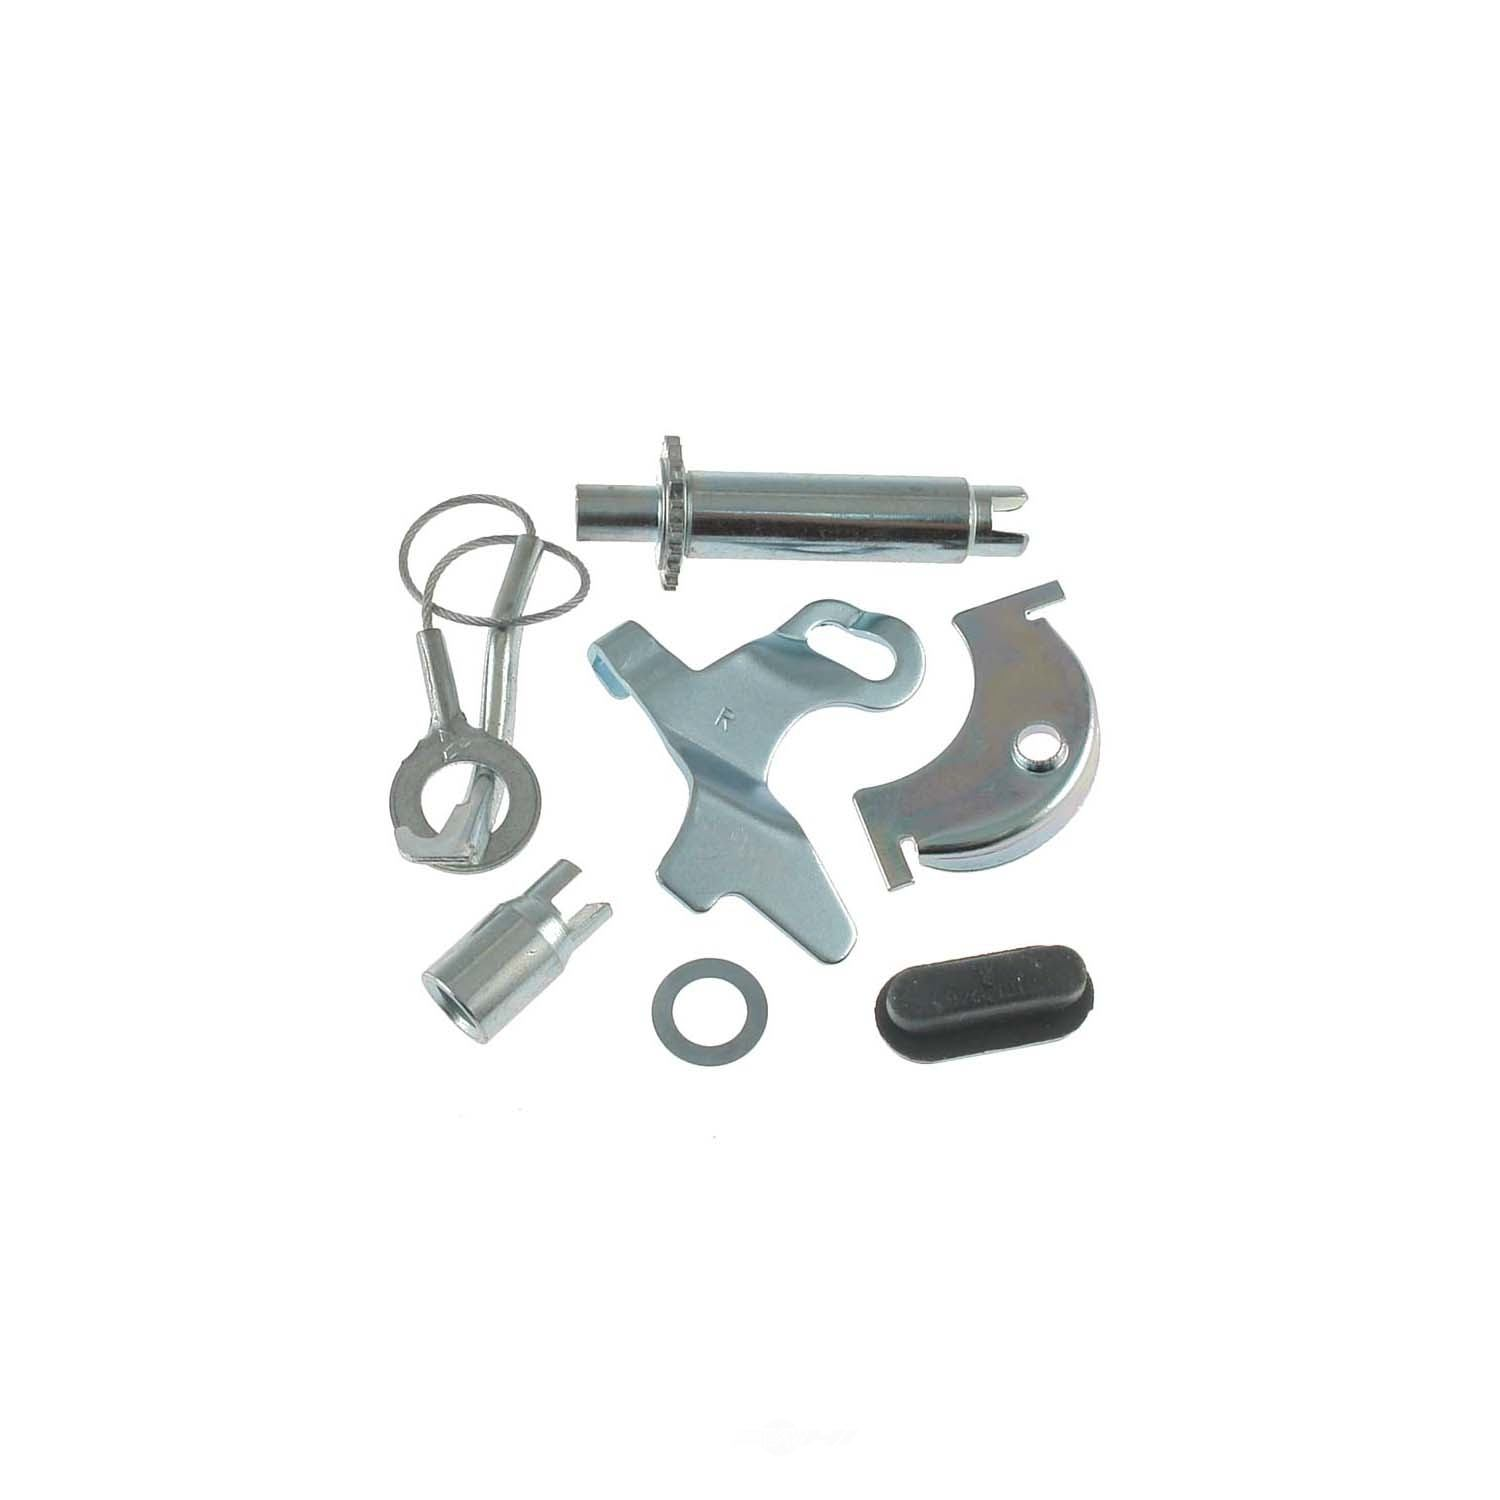 CARLSON QUALITY BRAKE PARTS - Drum Brake Self Adjuster Repair Kit (Rear Right) - CRL H2597